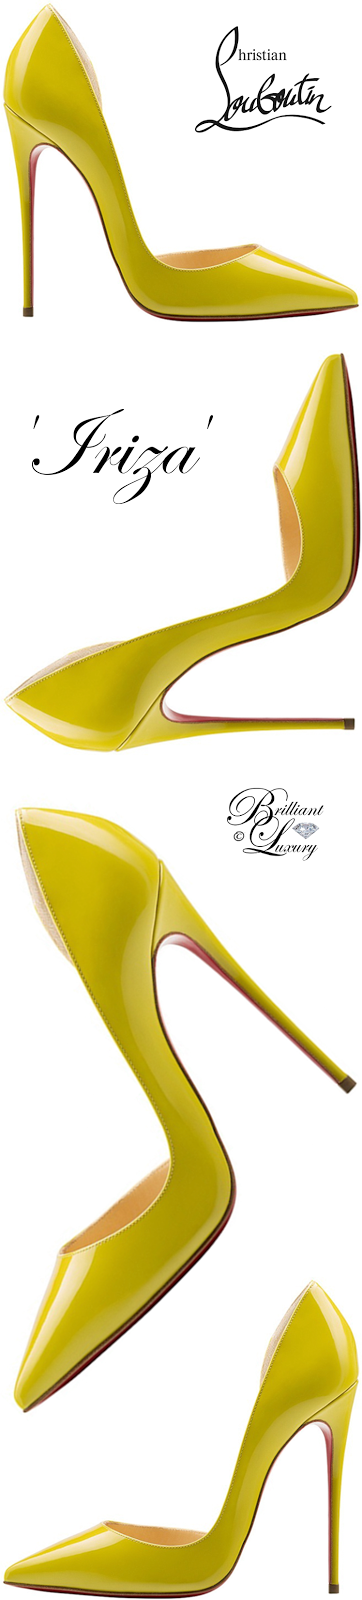 Brilliant Luxury ♦ Christian Louboutin Iriza Half D'Orsay Red Sole Pump #yellow